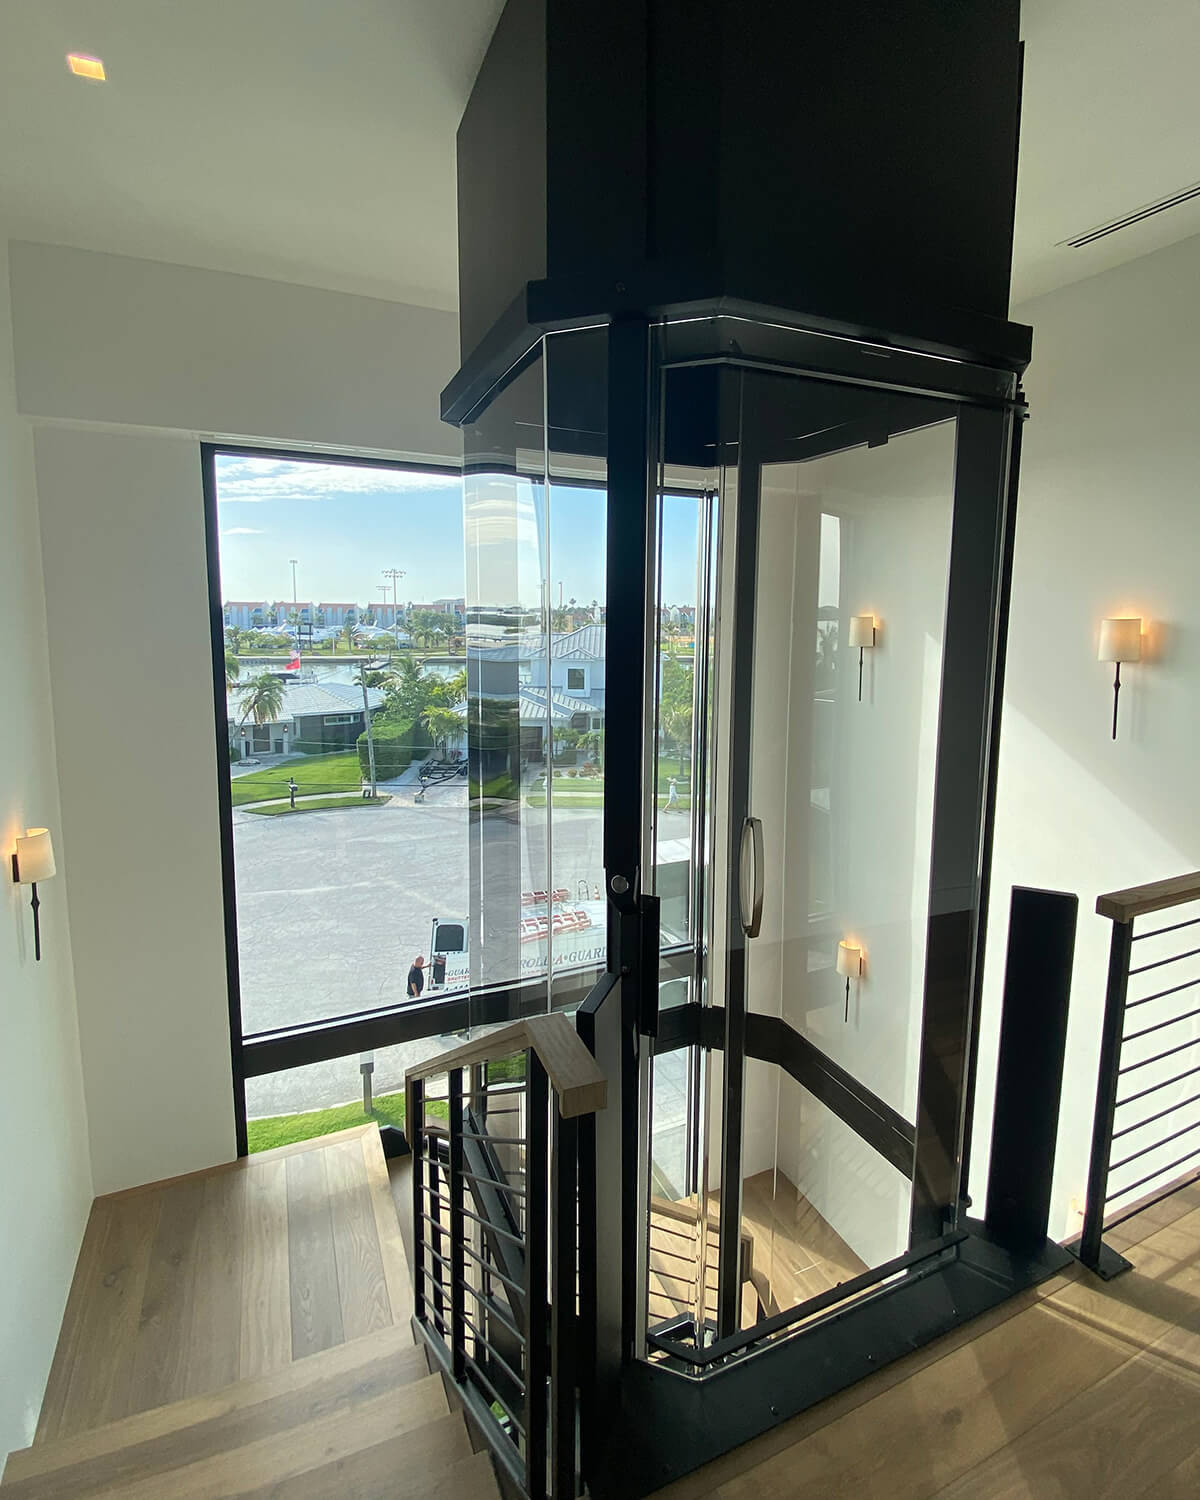 Savaria Octagonal Acrylic Panoramic Home Elevator with black frame opening at top of wooden staircase